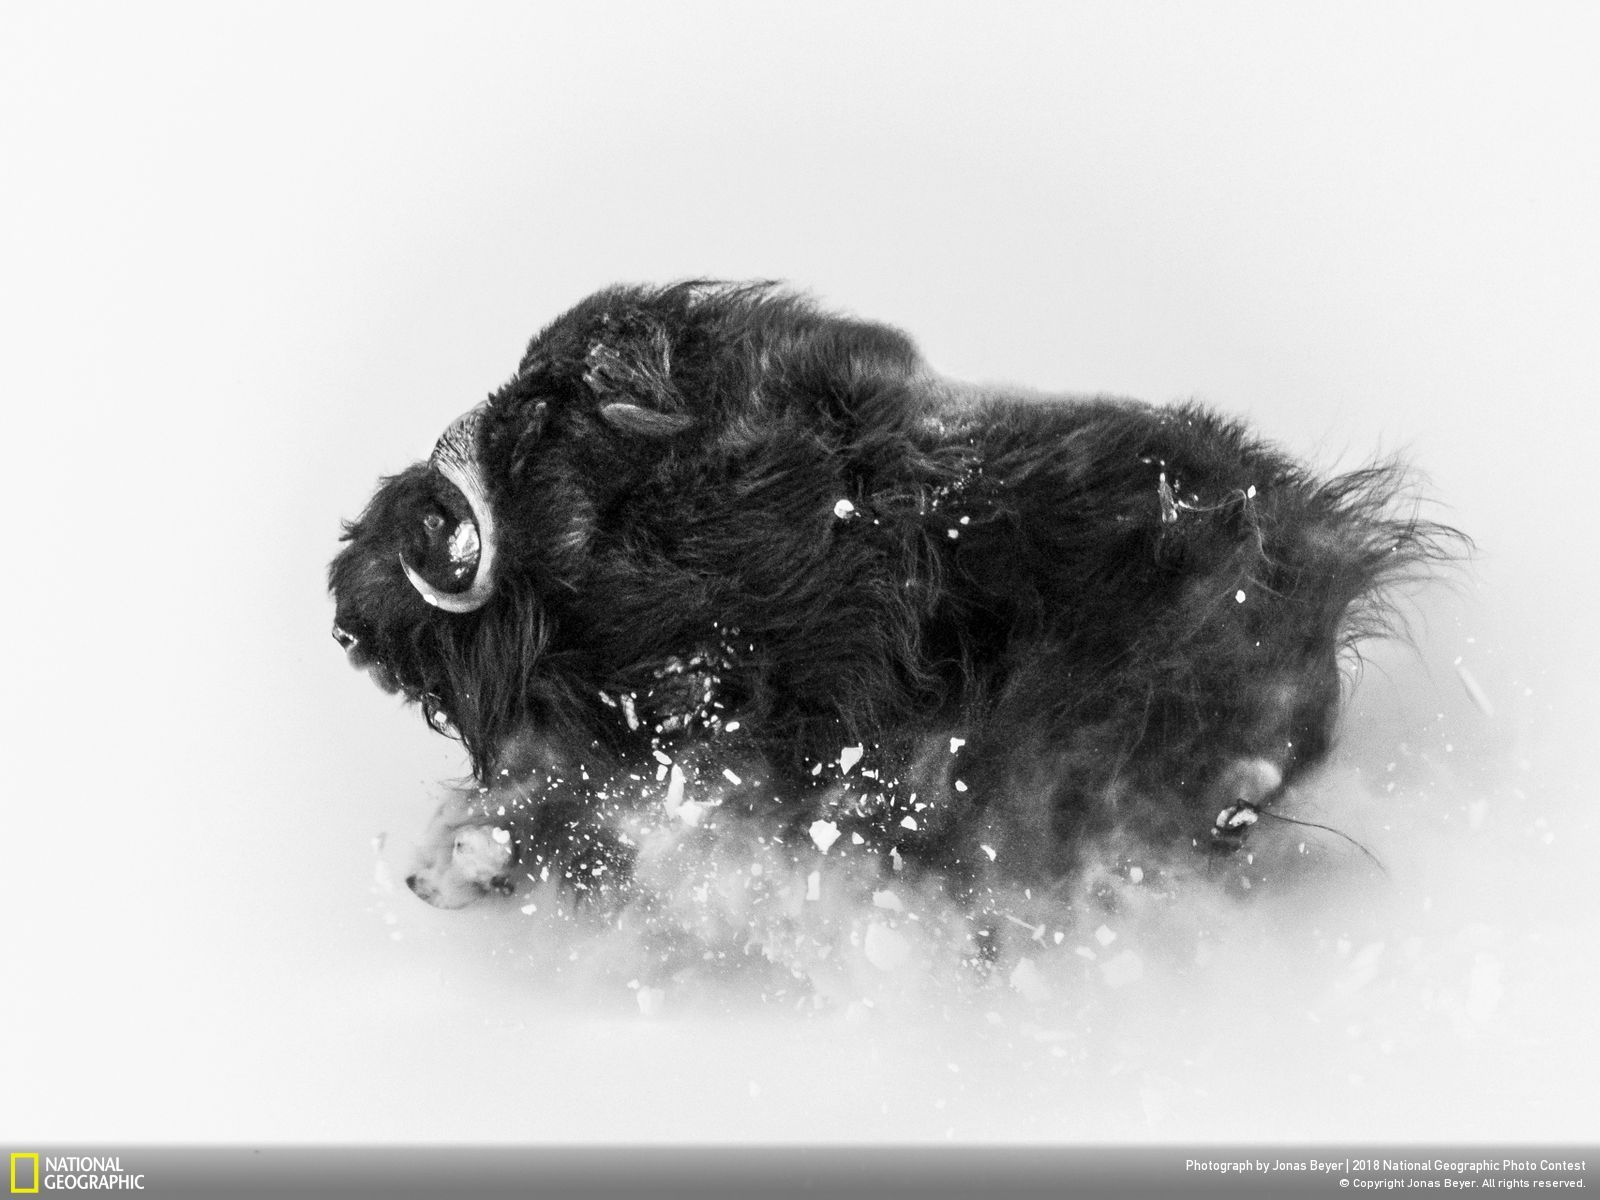 Second Prix Wildlife National Geographic Photo Contest, Deep Snow par Jonas Beyer